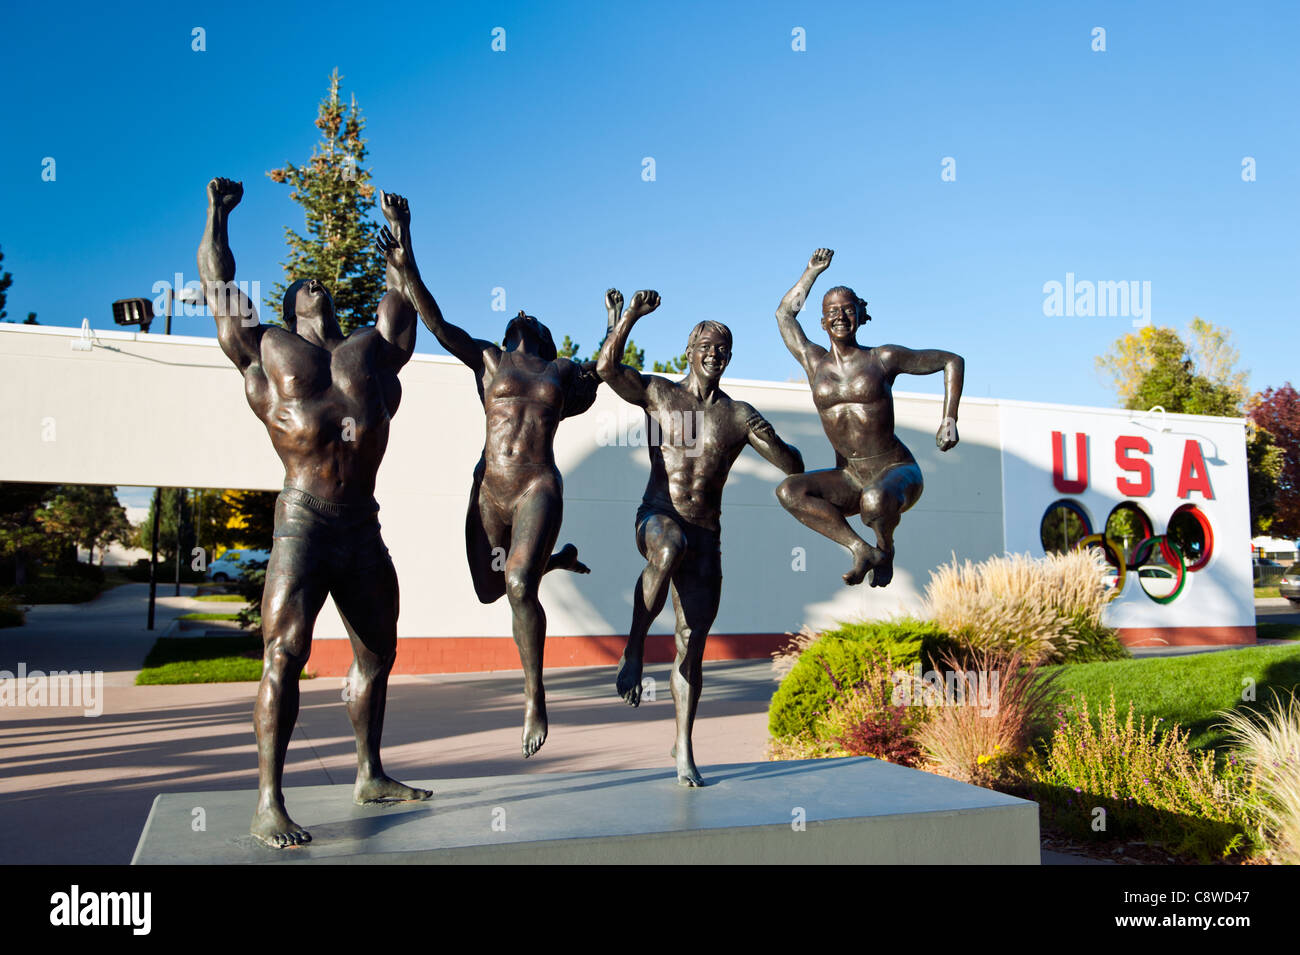 Art colorado springs - A Sculpture In Front Of The U S Olympic Training Center Colorado Springs Colorado